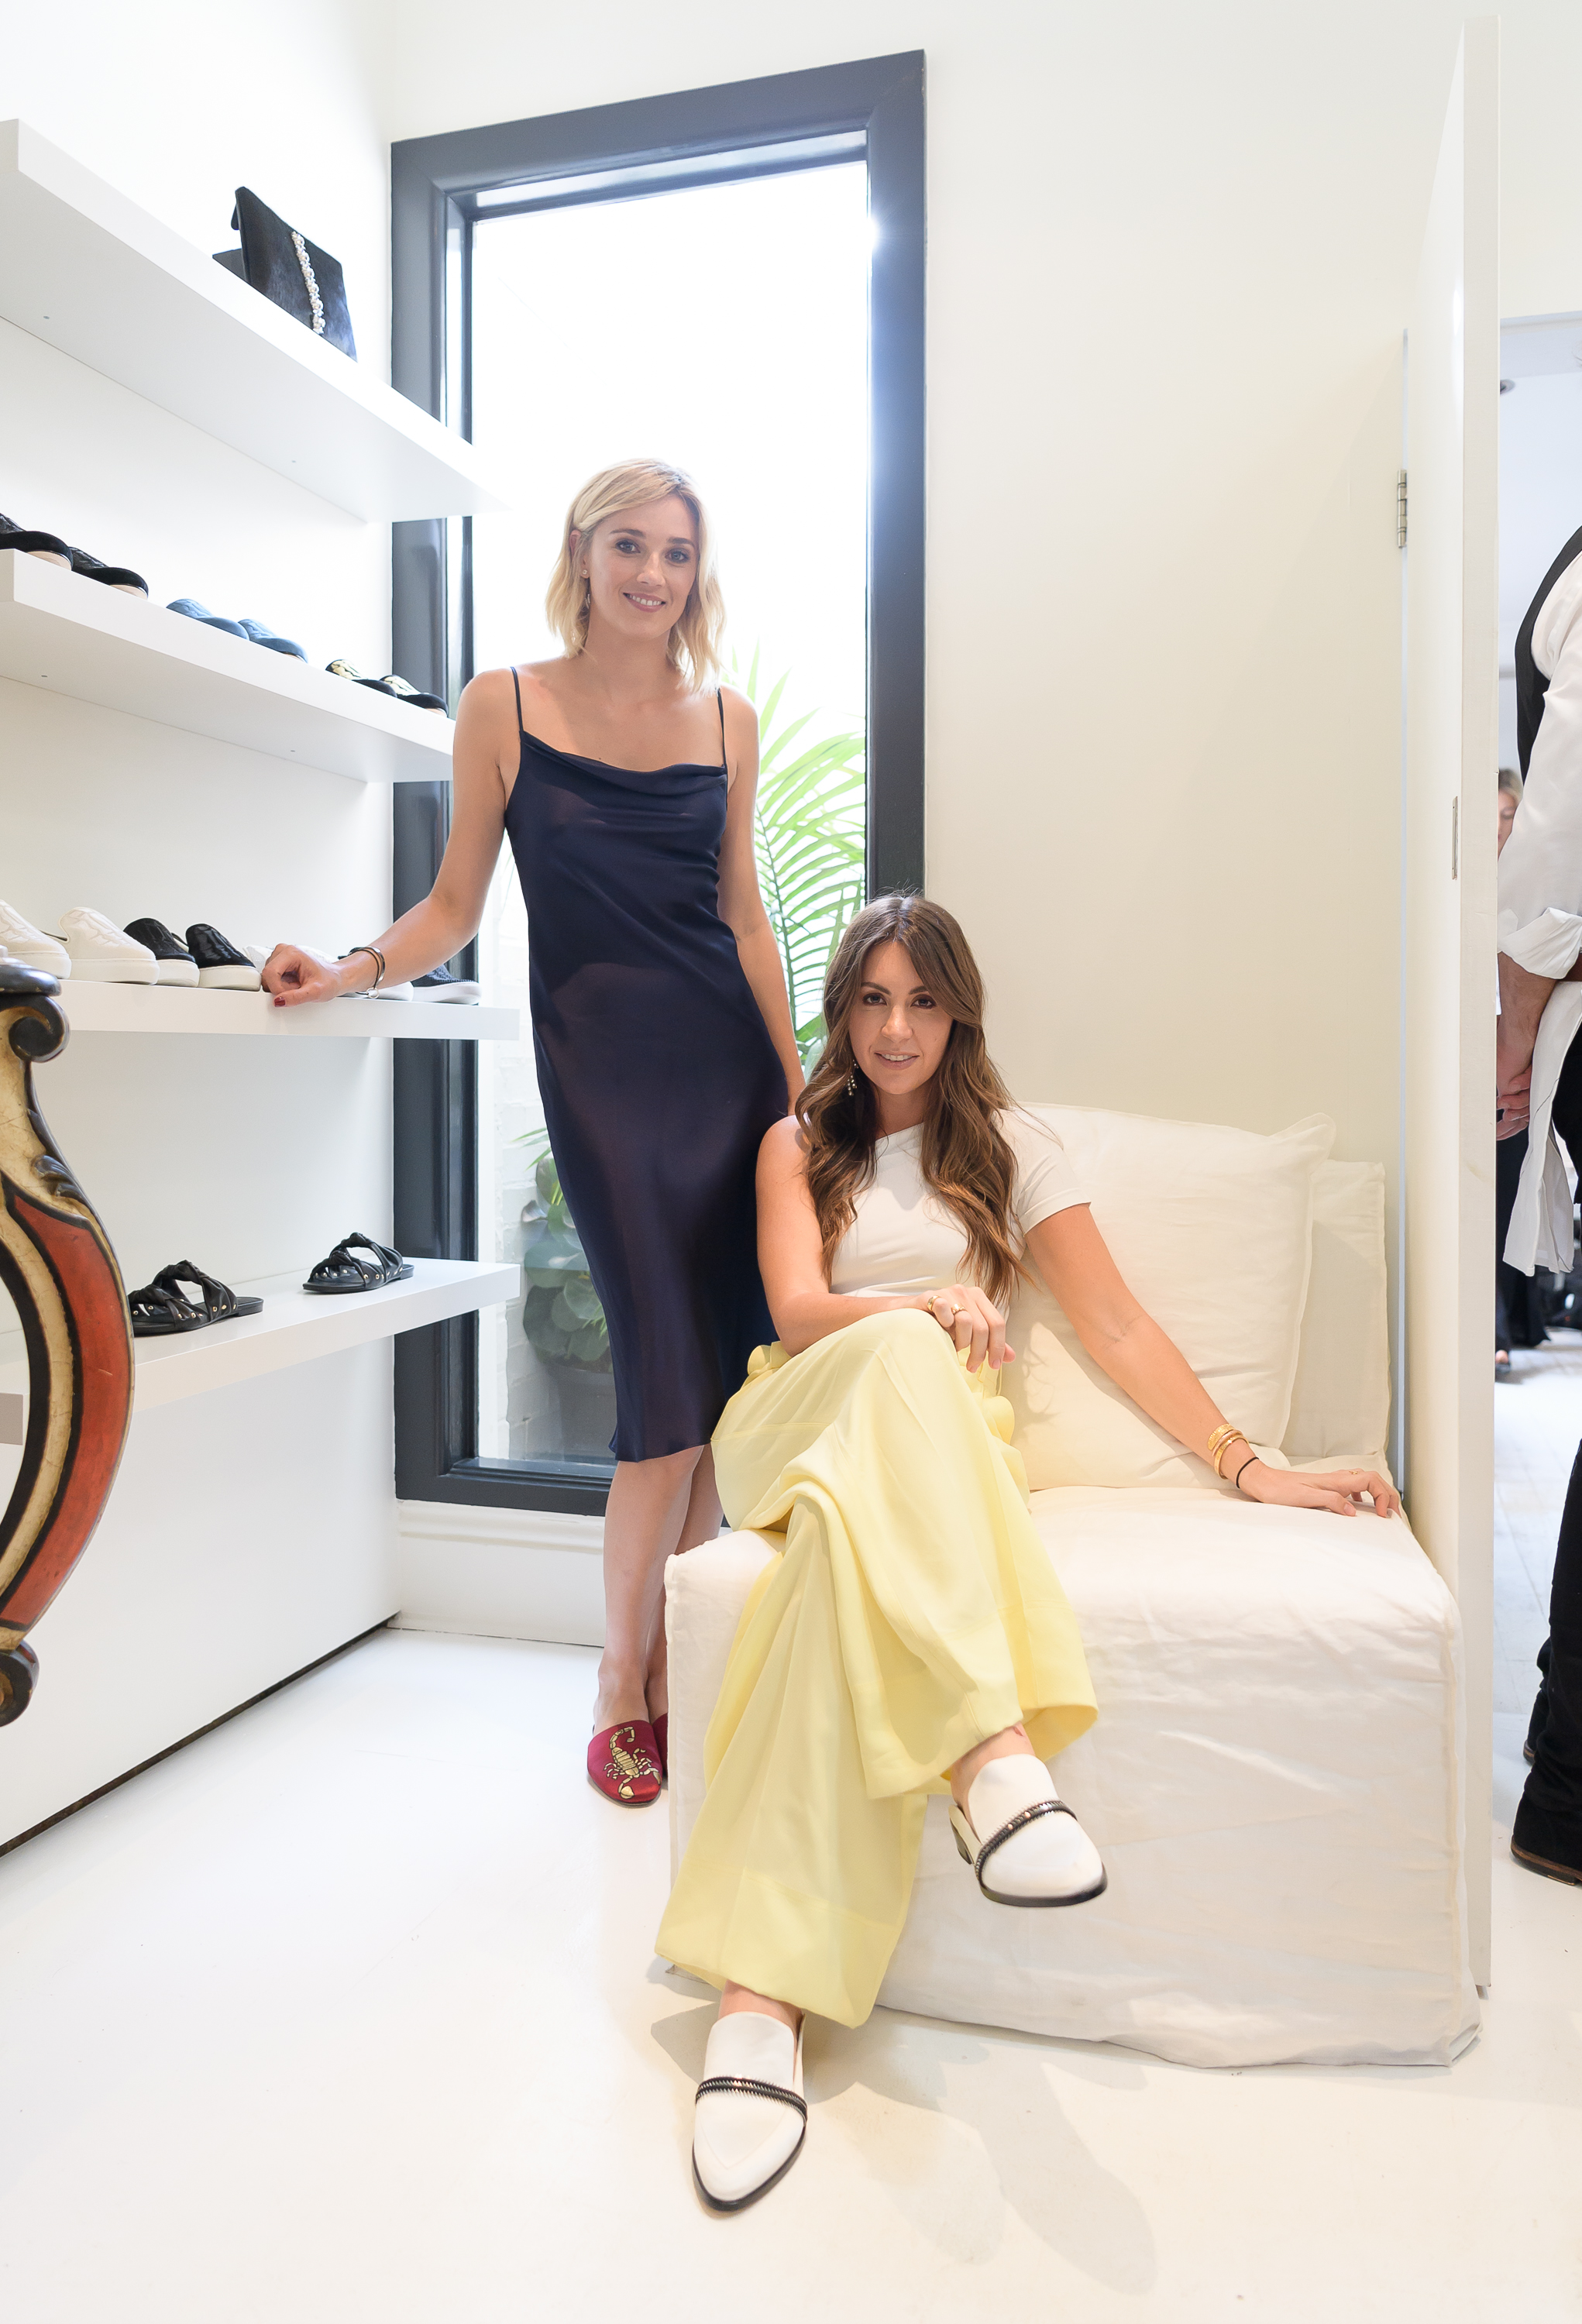 fcdfeeb3f8 Co-founders Jasmine Yarbrough and Tamie Ingham inside the opening of the  first Mara and Mine store. Image credit  Mara and Mine